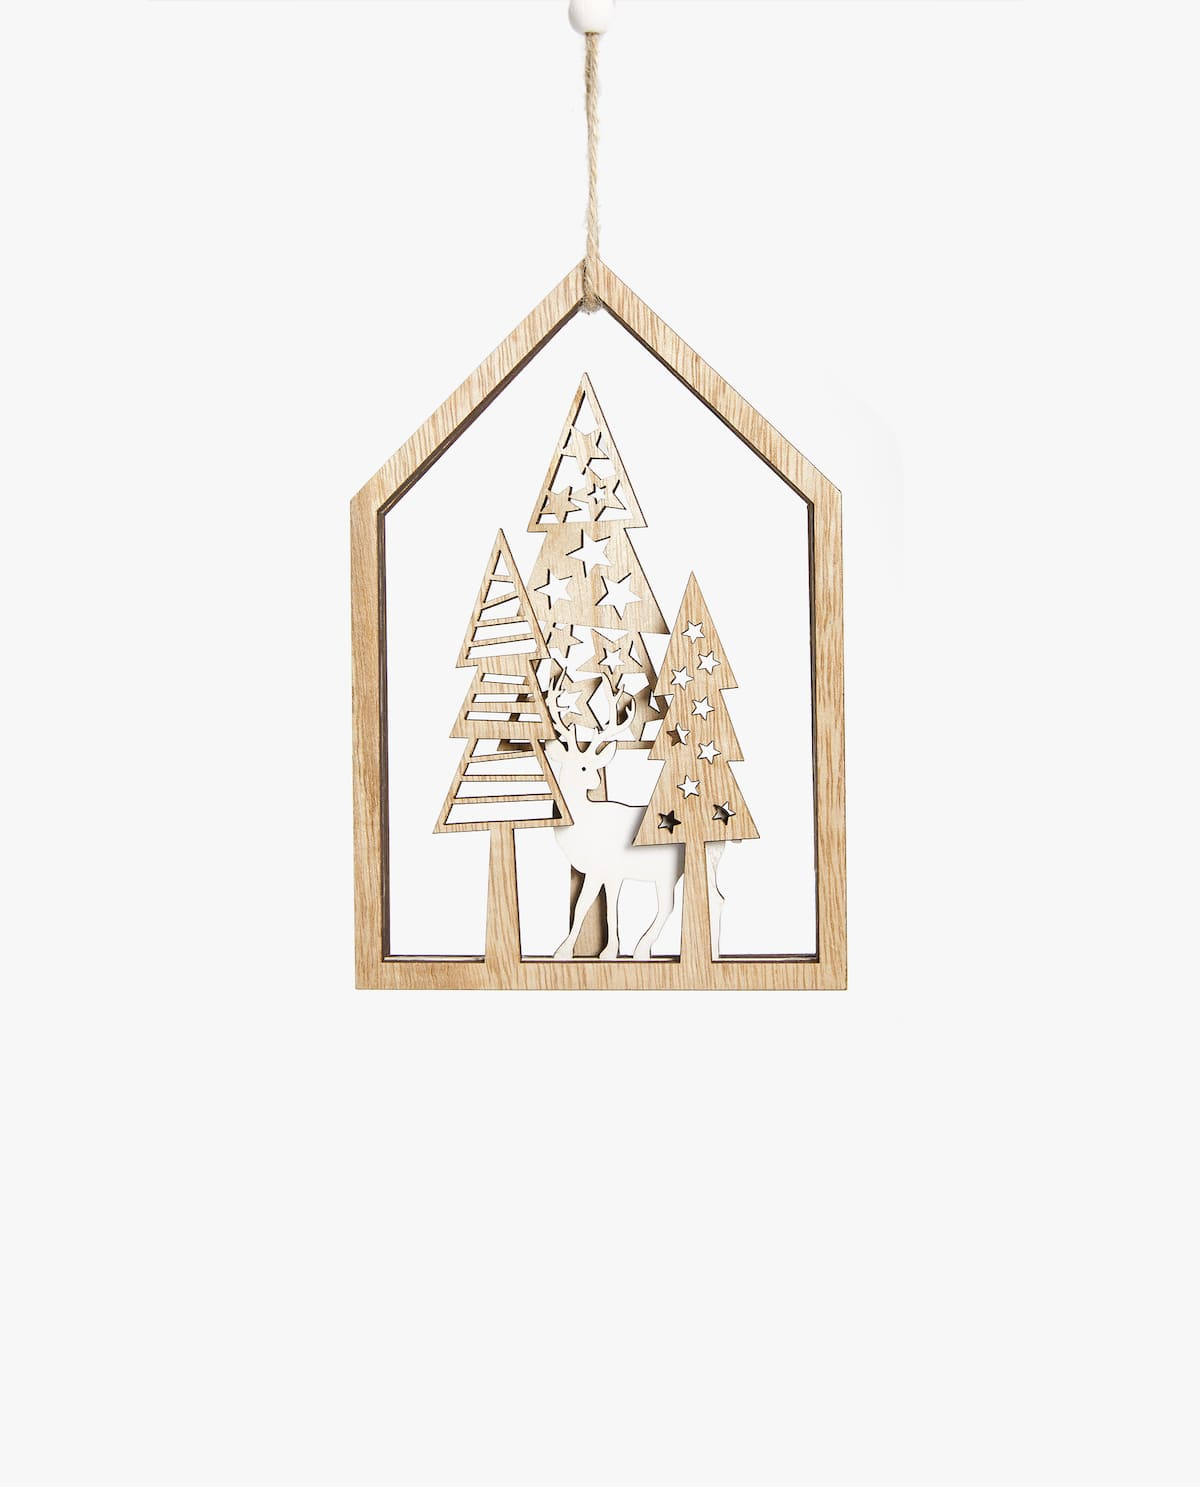 WOODEN DECORATION - DECORATIONS - FOR THE TREE - DECORATION ...